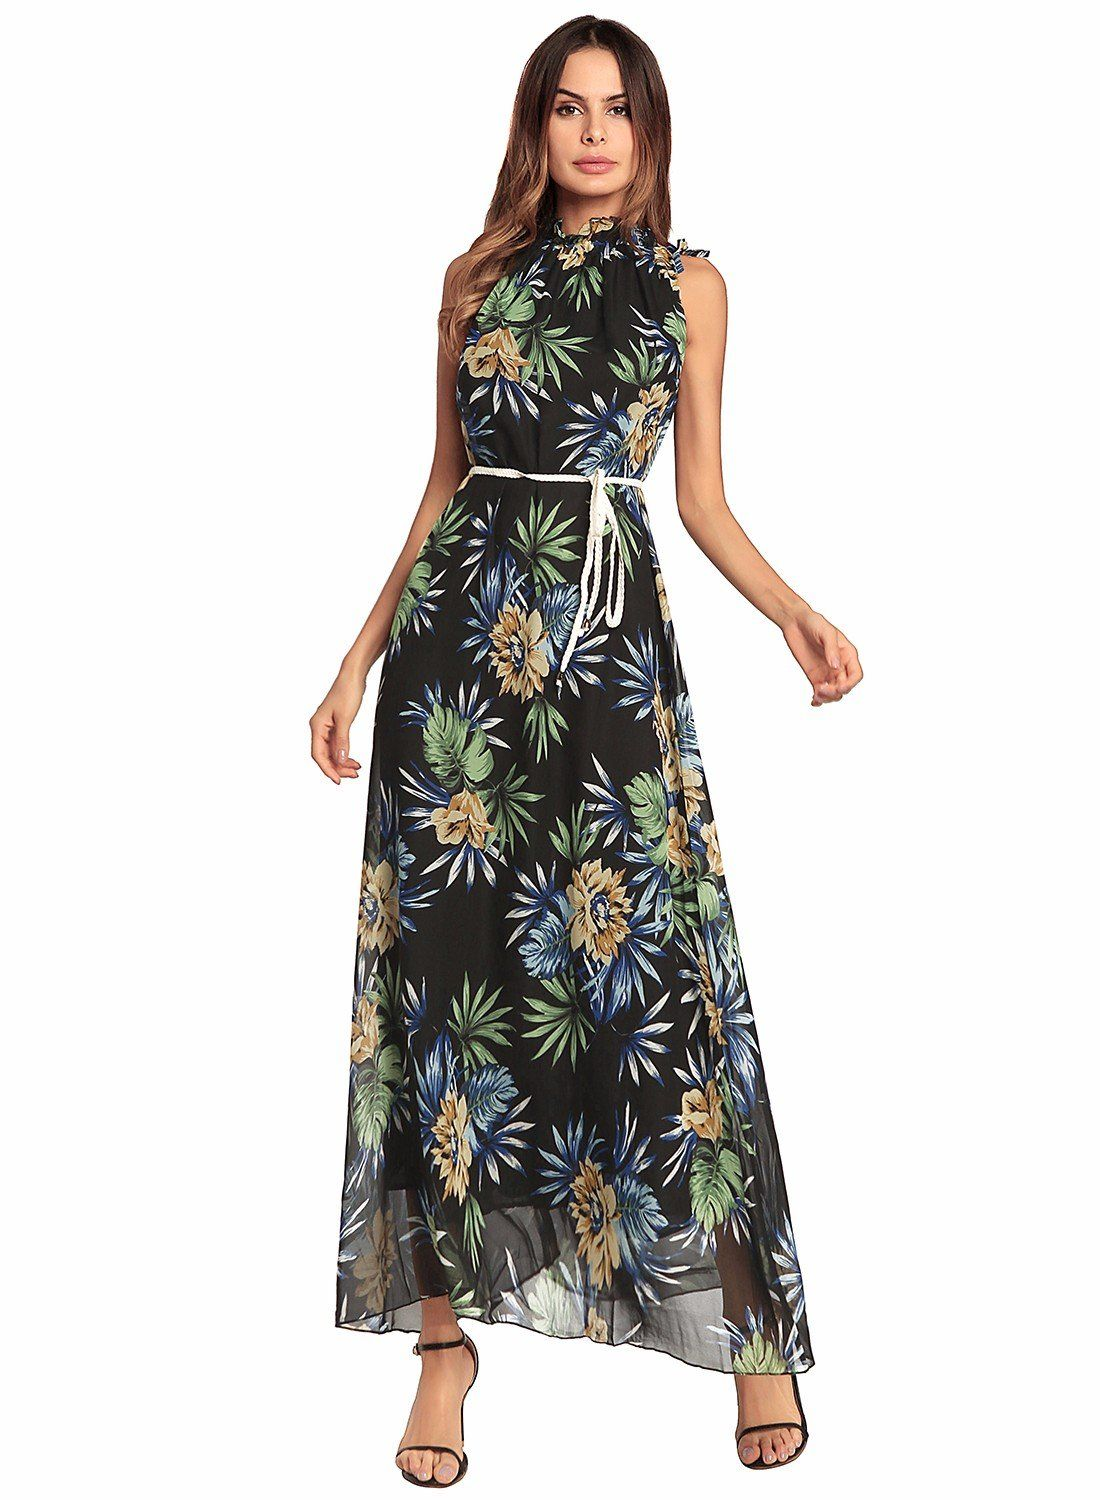 36e6742b69b Maternity Outfits - baggy maternity dresses   Ruiyige Womens Halter Neck  Floral Print Backless Beach Party Maxi Dress     Want additional details